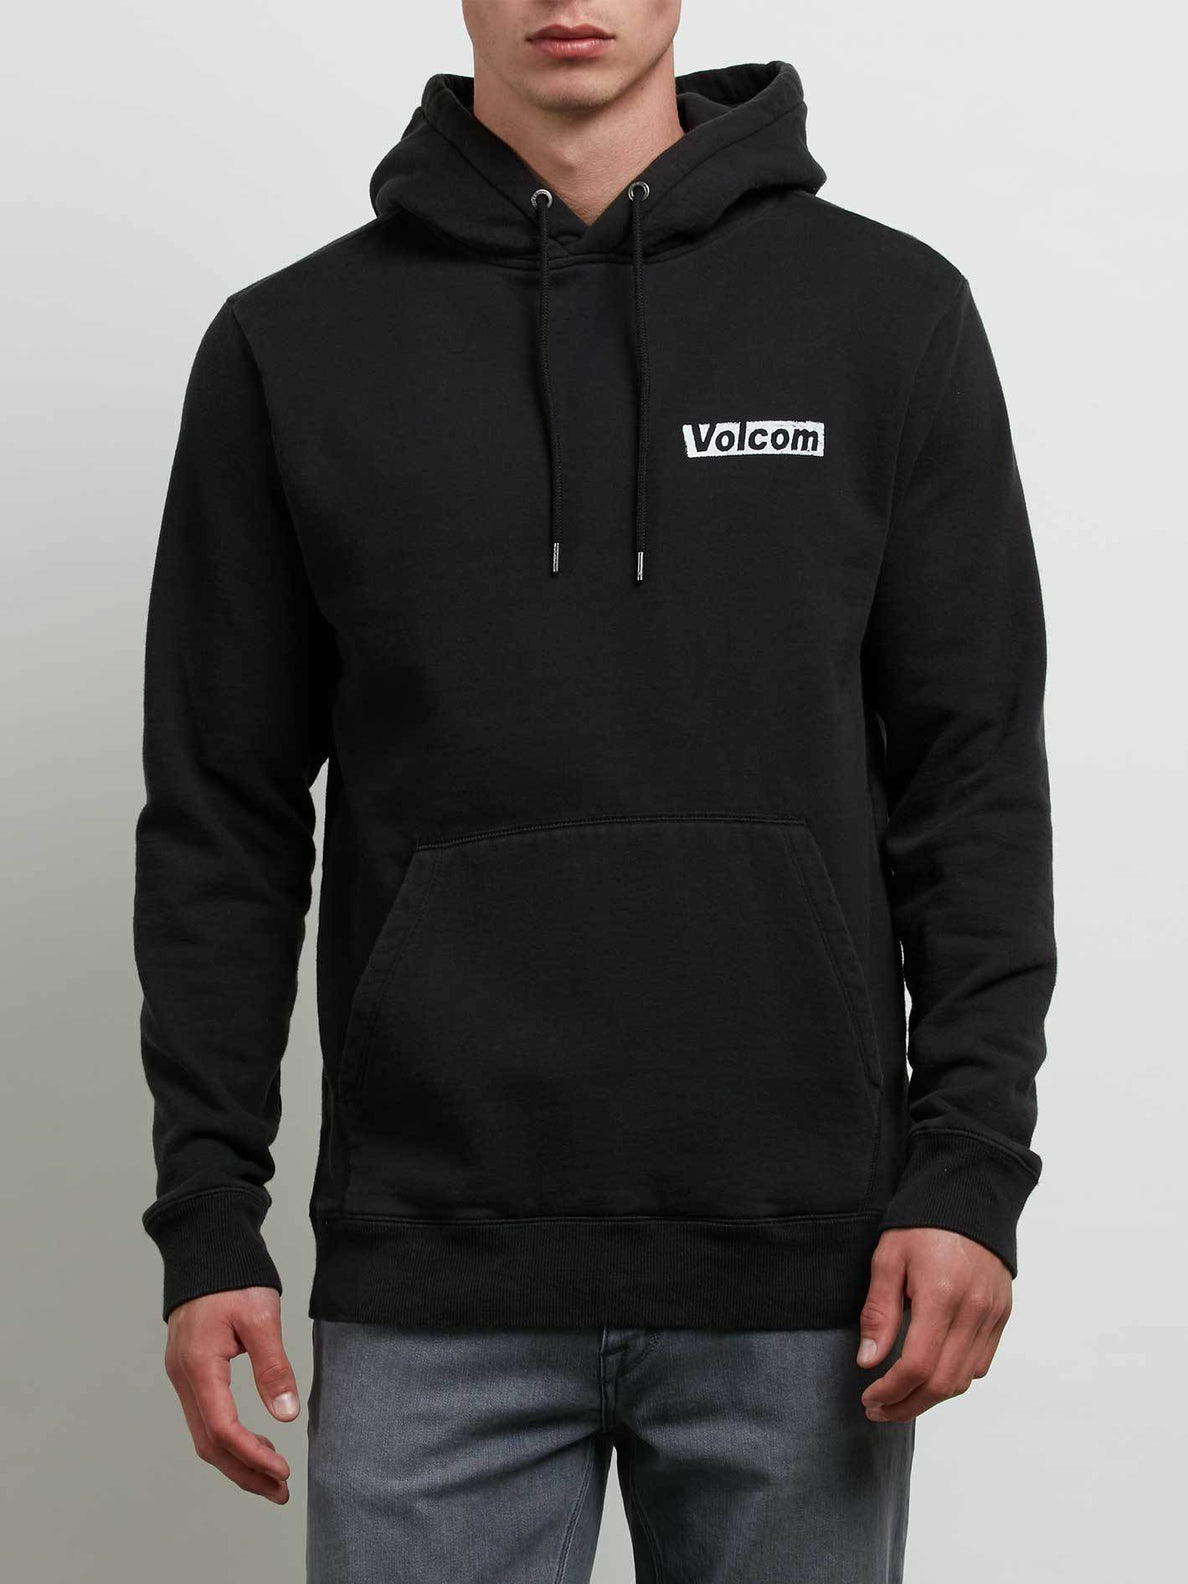 Reload Pullover - Washed Black